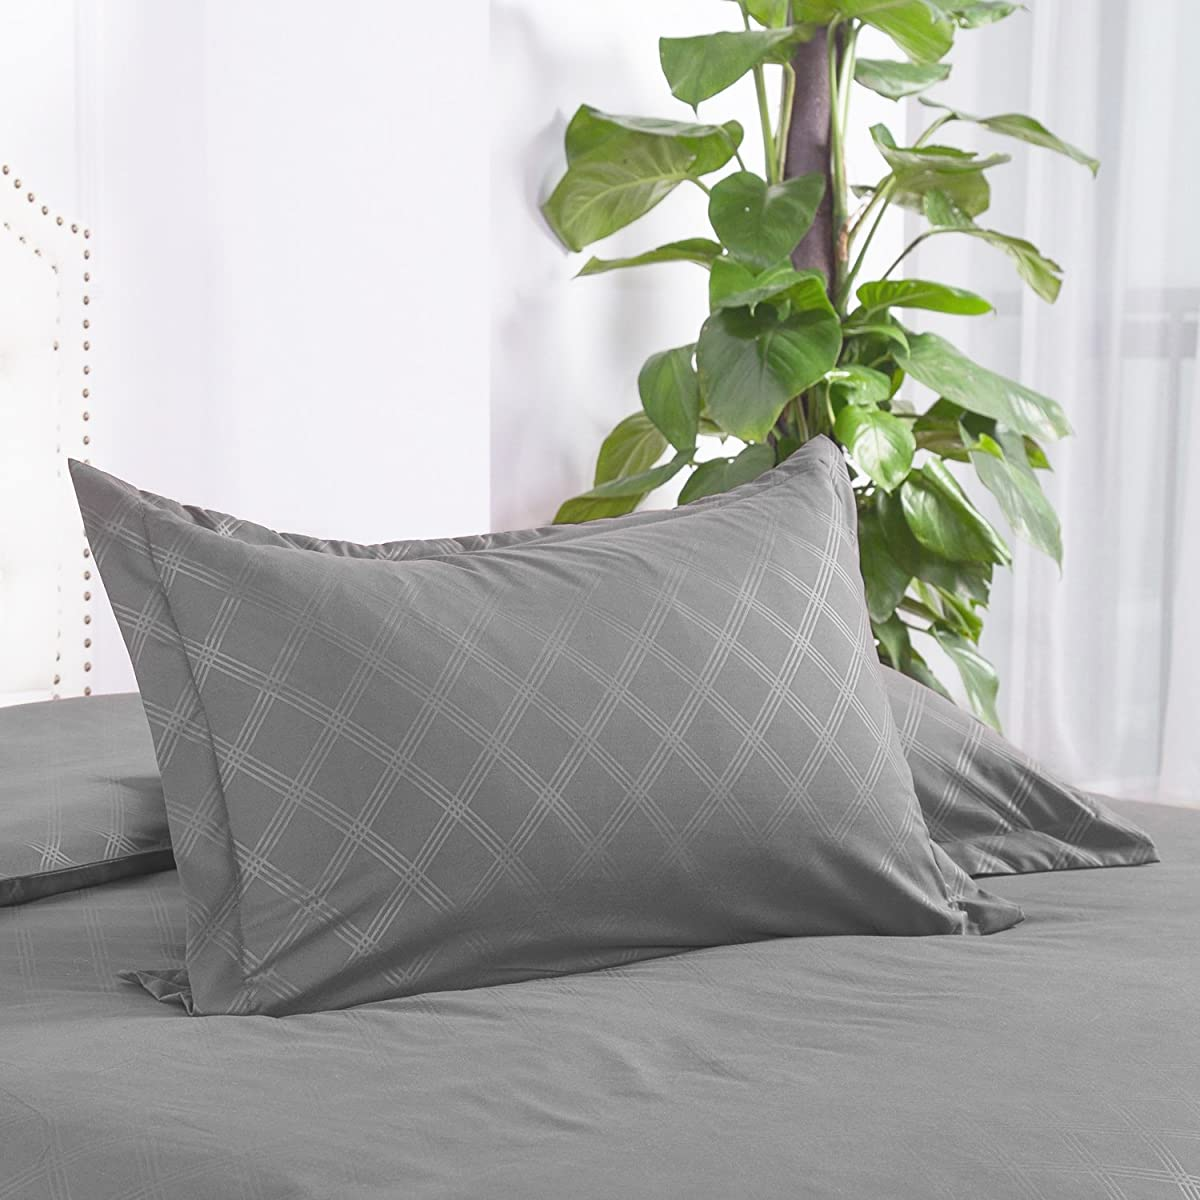 "Duvet Cover Set Full/Queen Grey Diamond Pattern Zipper Closure Hypoallergenic Microfiber ""Holloway"" by Bedsure"